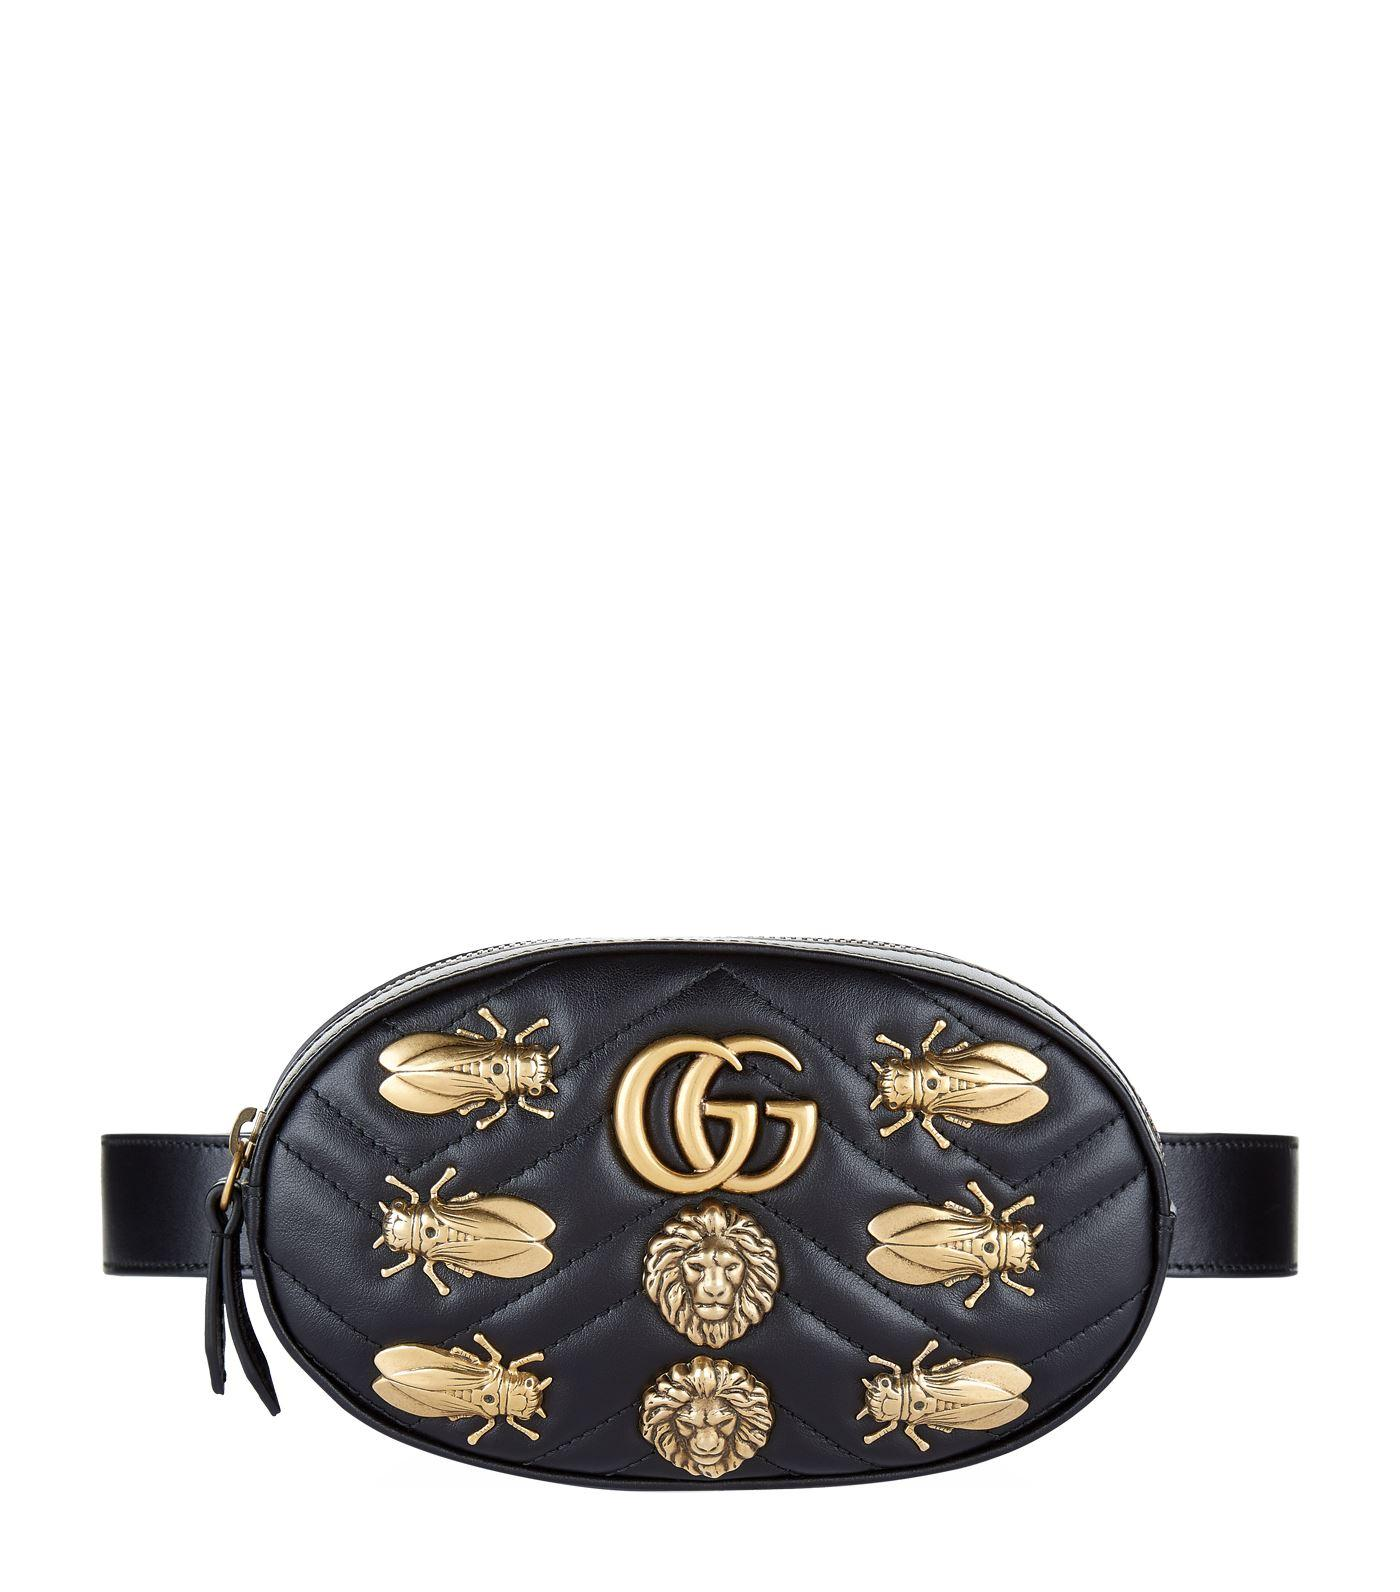 GUCCI EMBELLISHED MARMONT BELT BAG,P000000000005734399